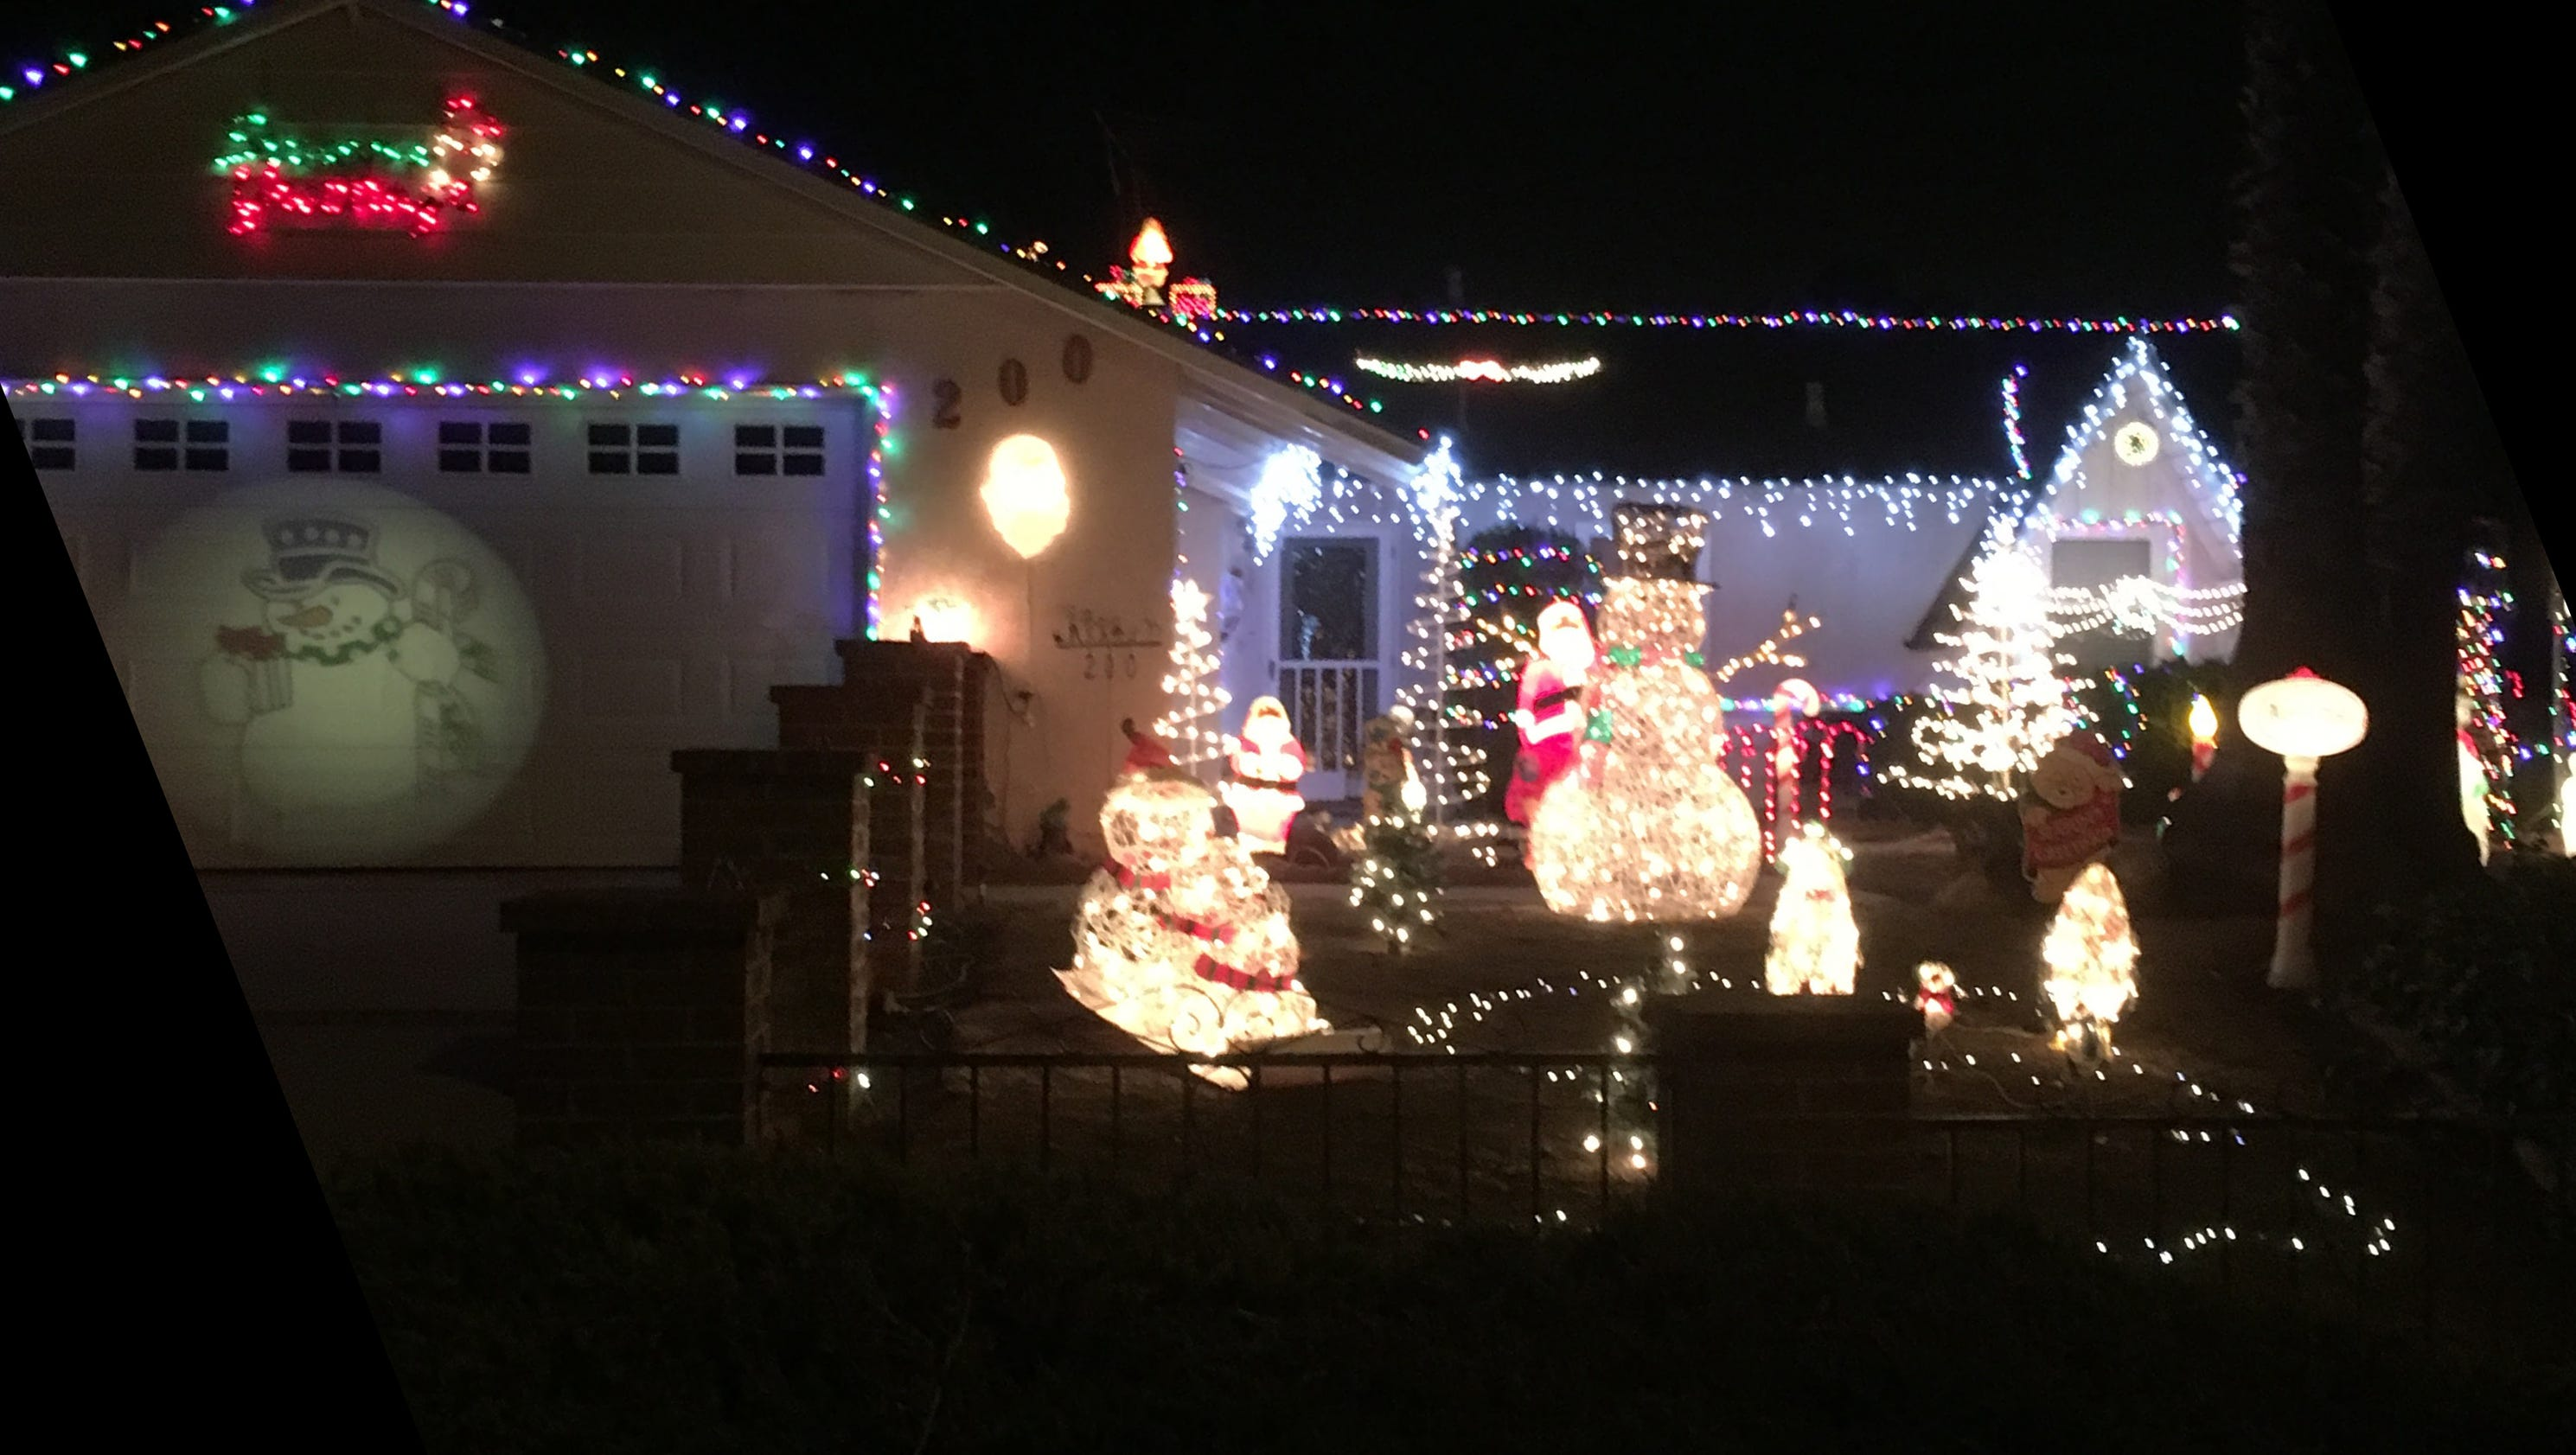 mapping out the best local holiday decorations